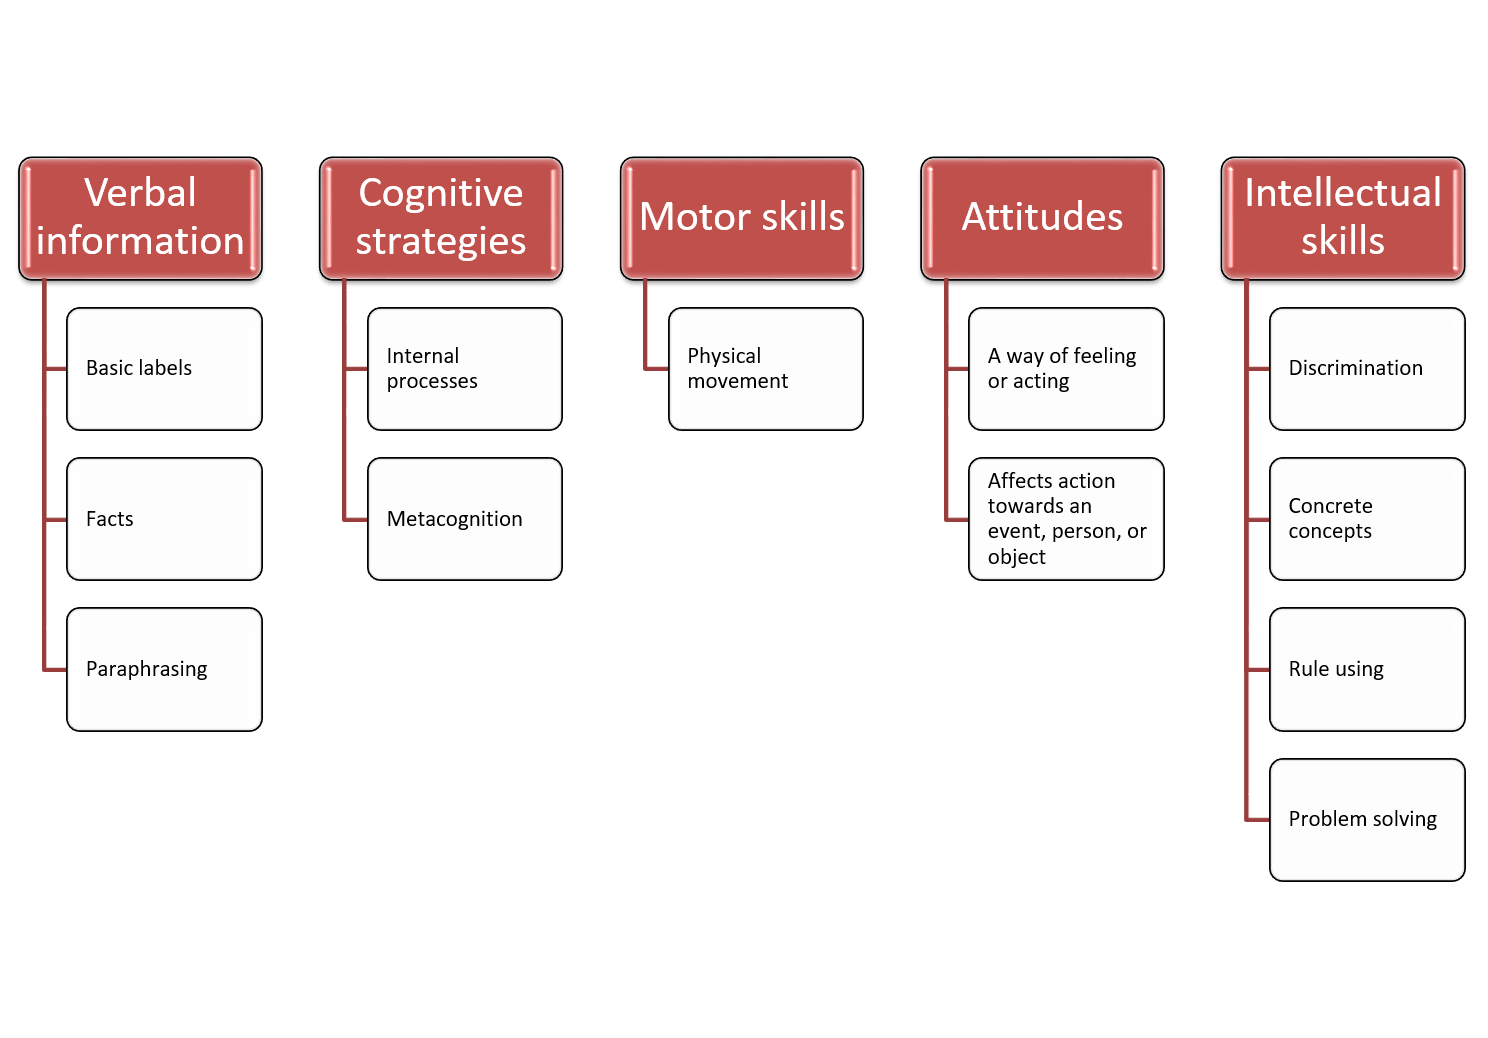 Image of the Domains of Learning